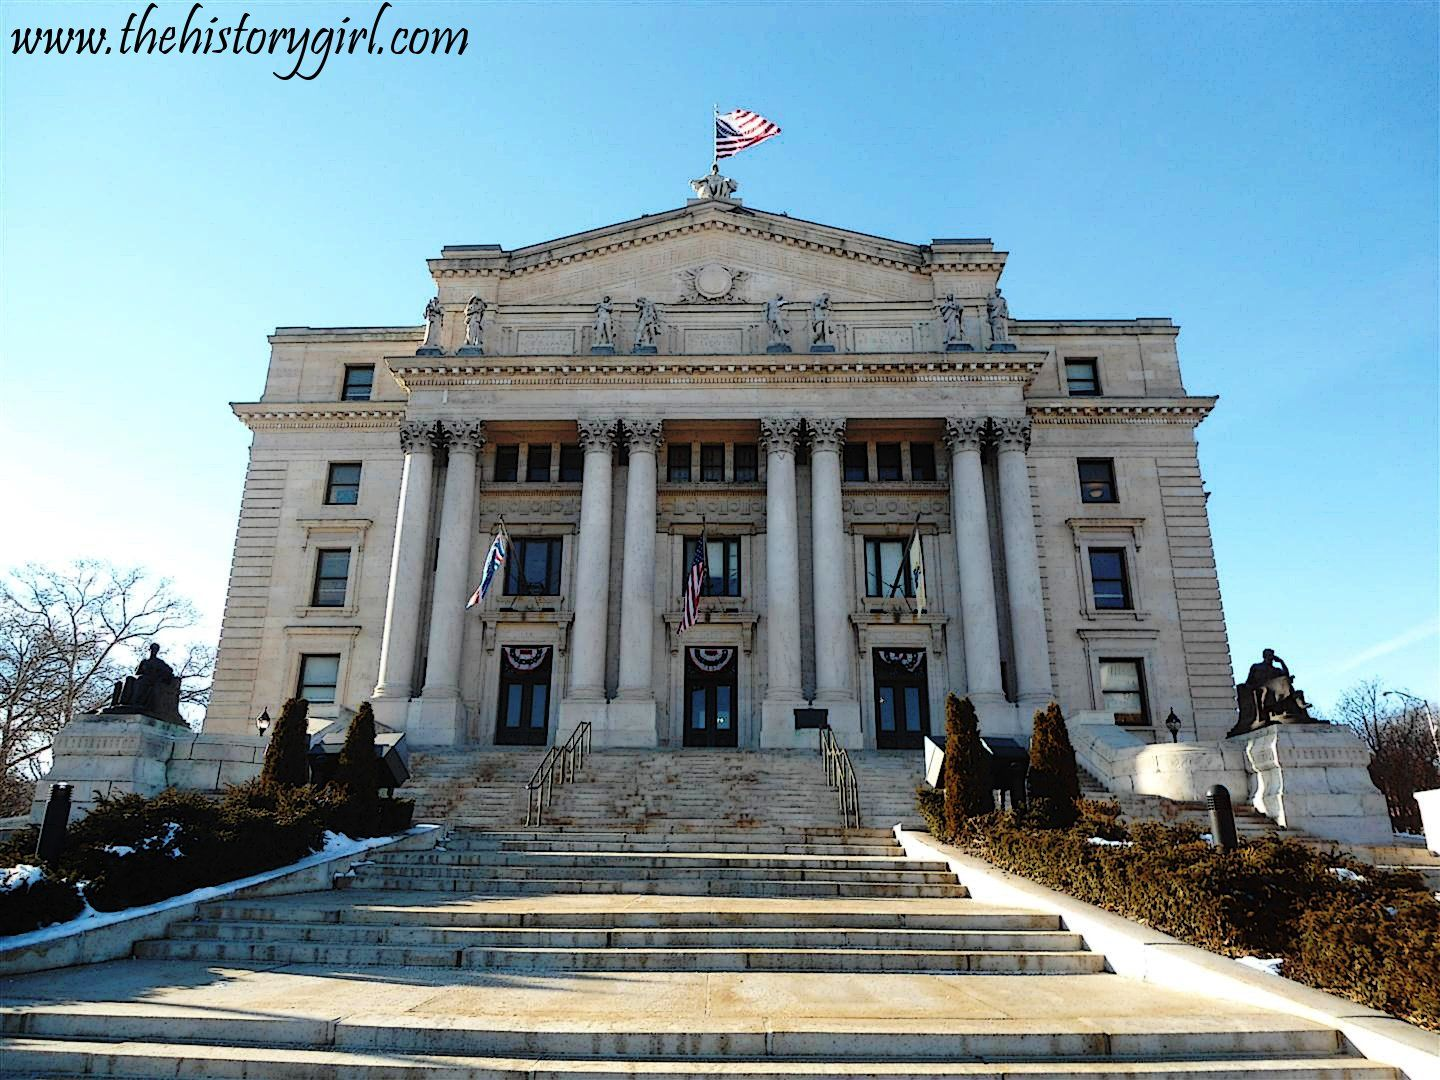 The Essex County Courthouse Located In Newark Nj Built In 1904 And